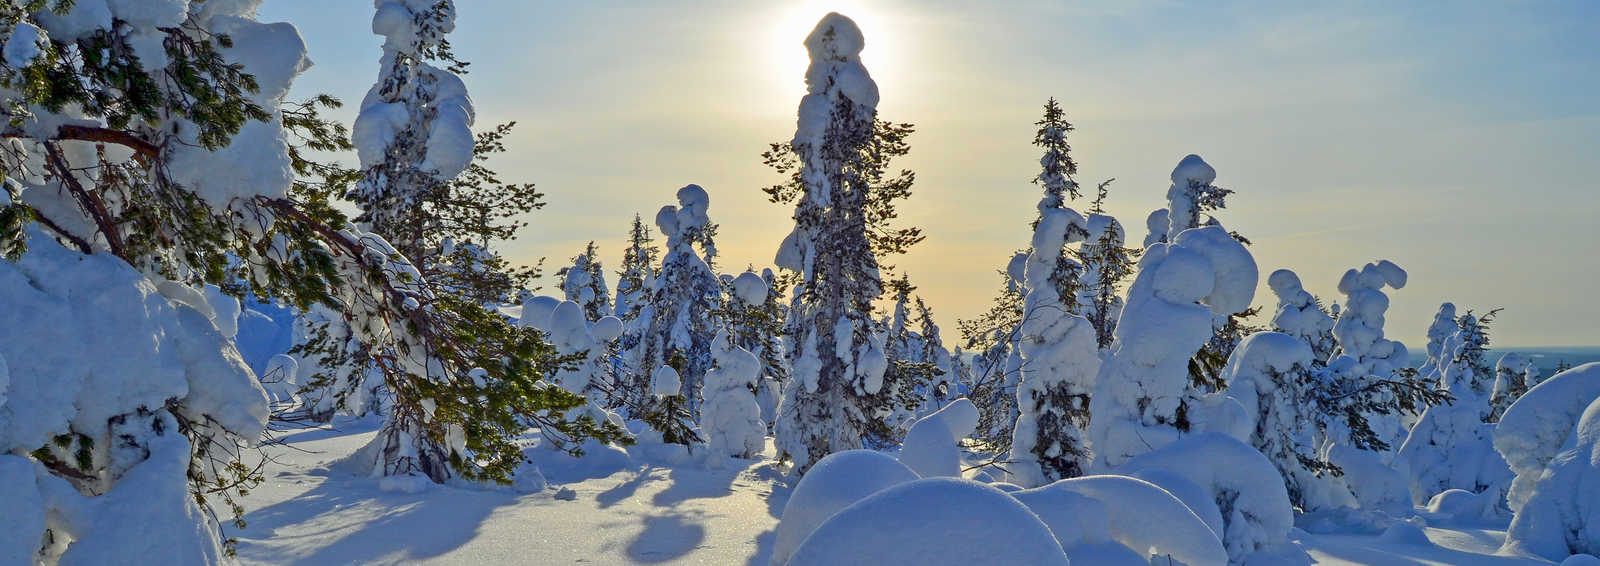 Cross country ski tracks on snowy forest on ski resort area in Lapland Finland.